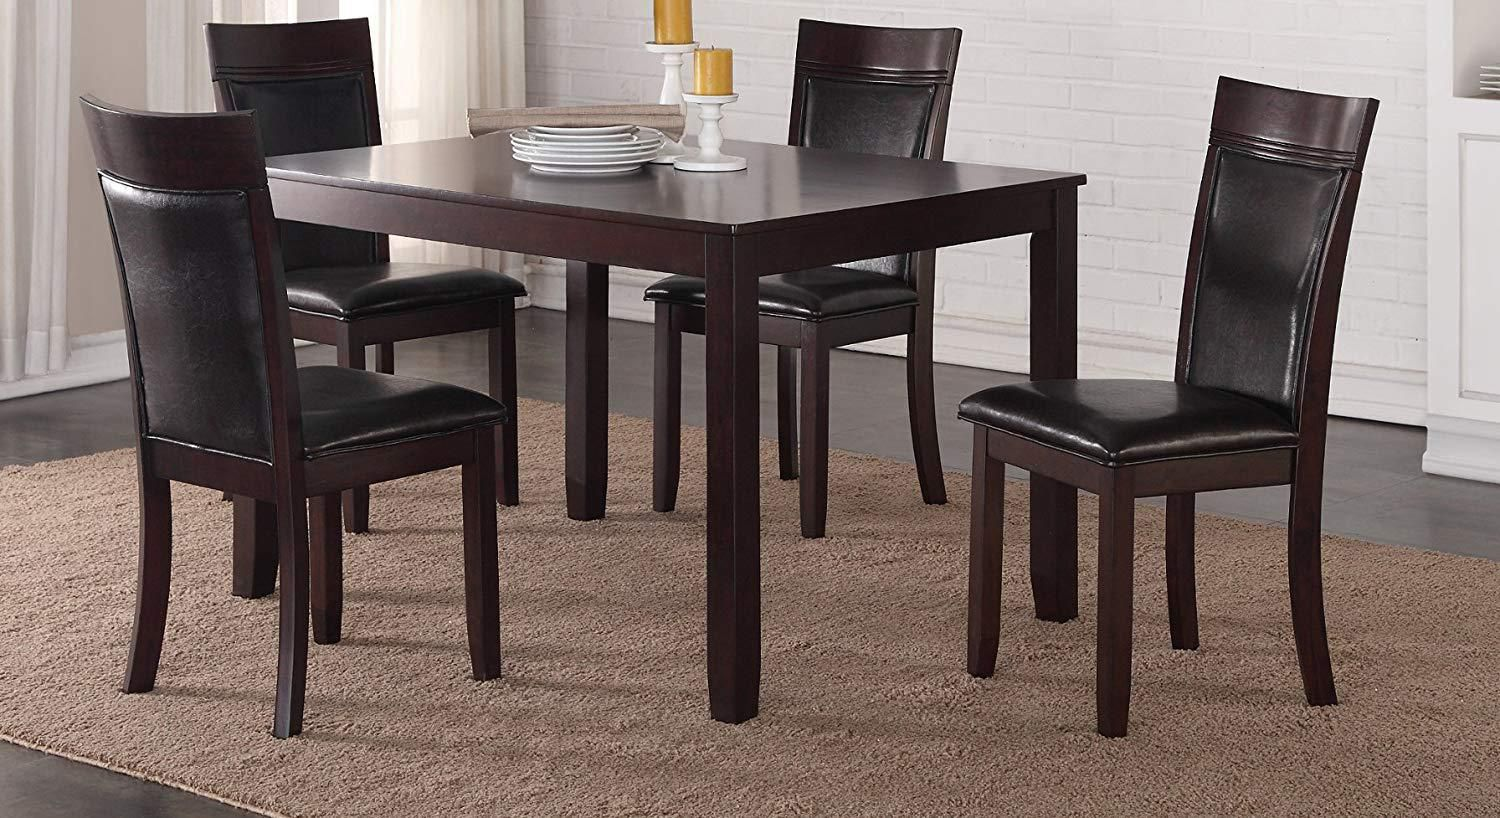 K LIVING Nellie Dining Chairs (Set of 6)